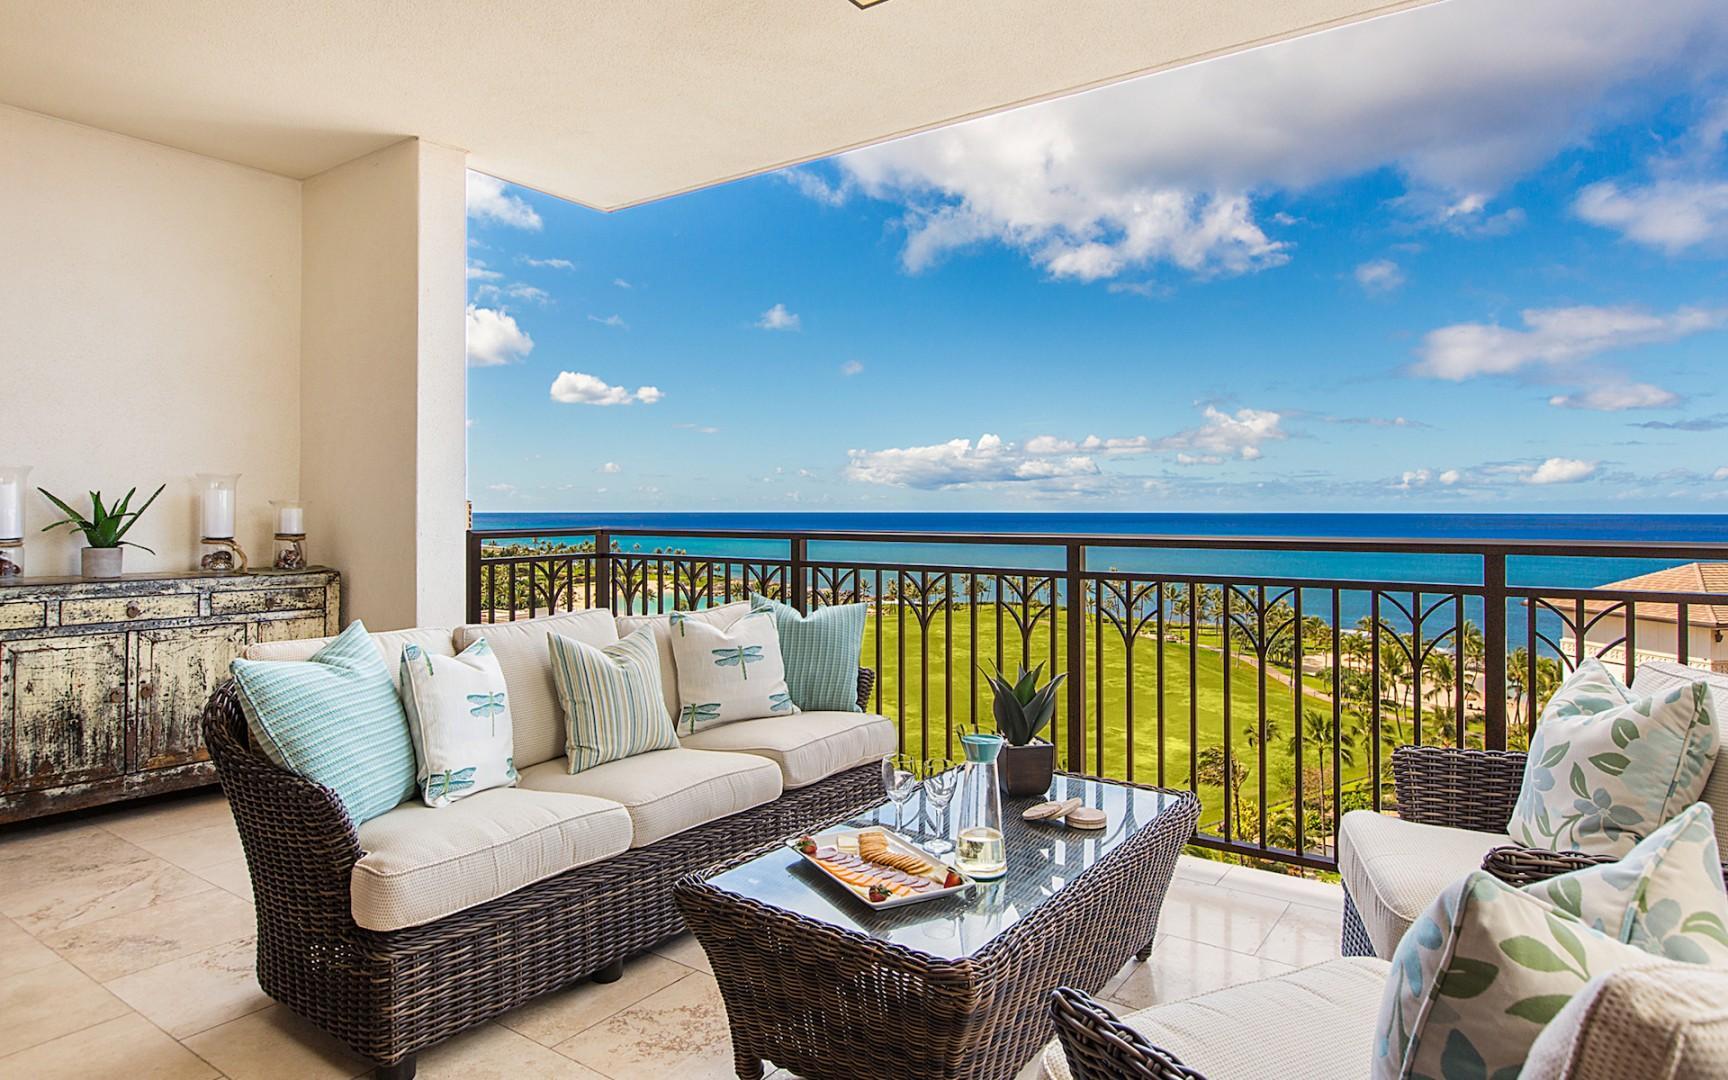 Stunning unobstructed ocean and sunset views from the furnished lanai.